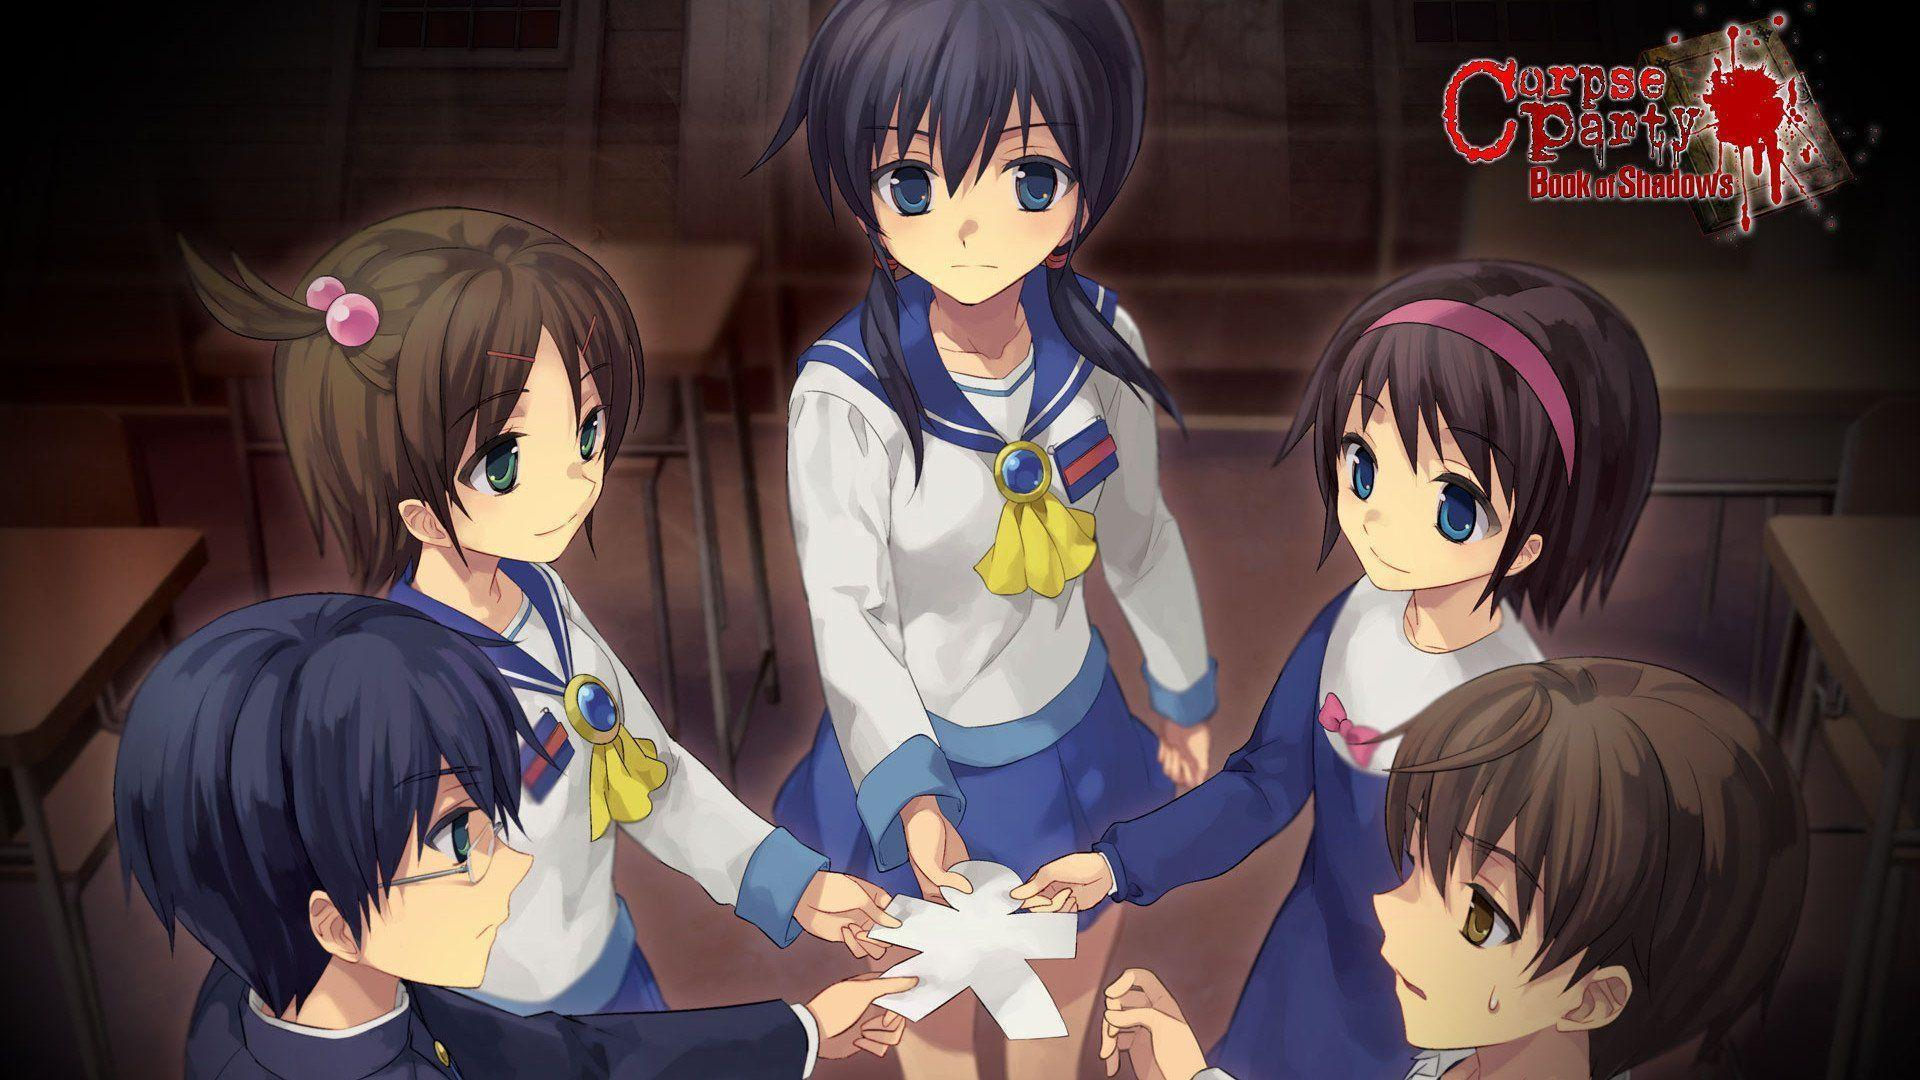 Corpse party boobs adult scenes